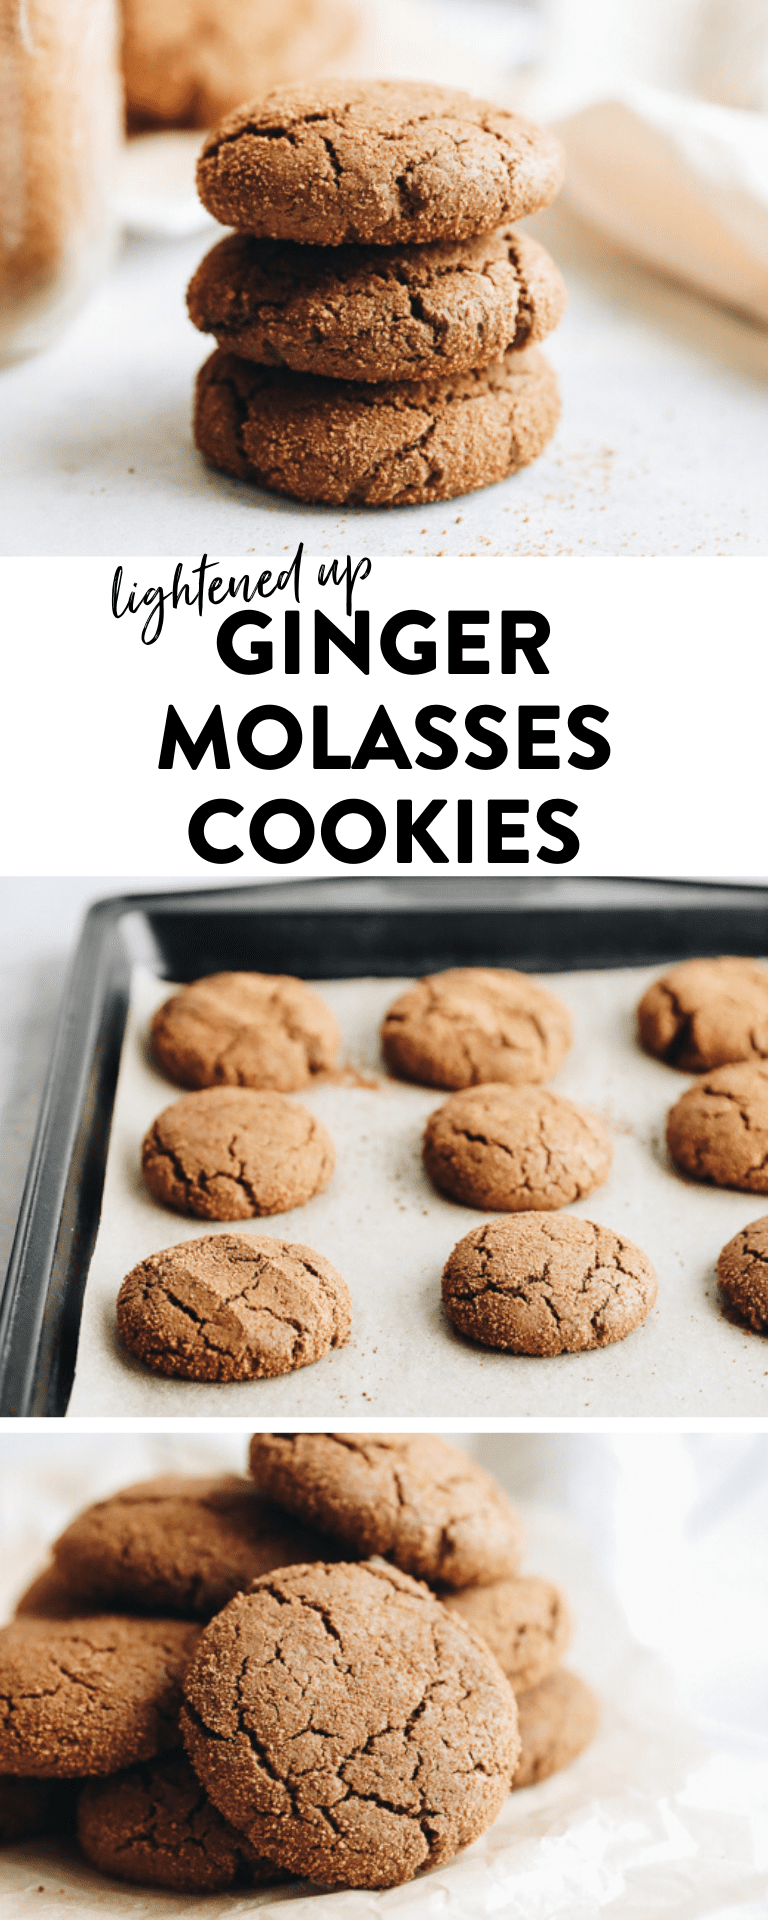 Healthier Ginger Molasses Cookies lightened-up with better for you ingredients!